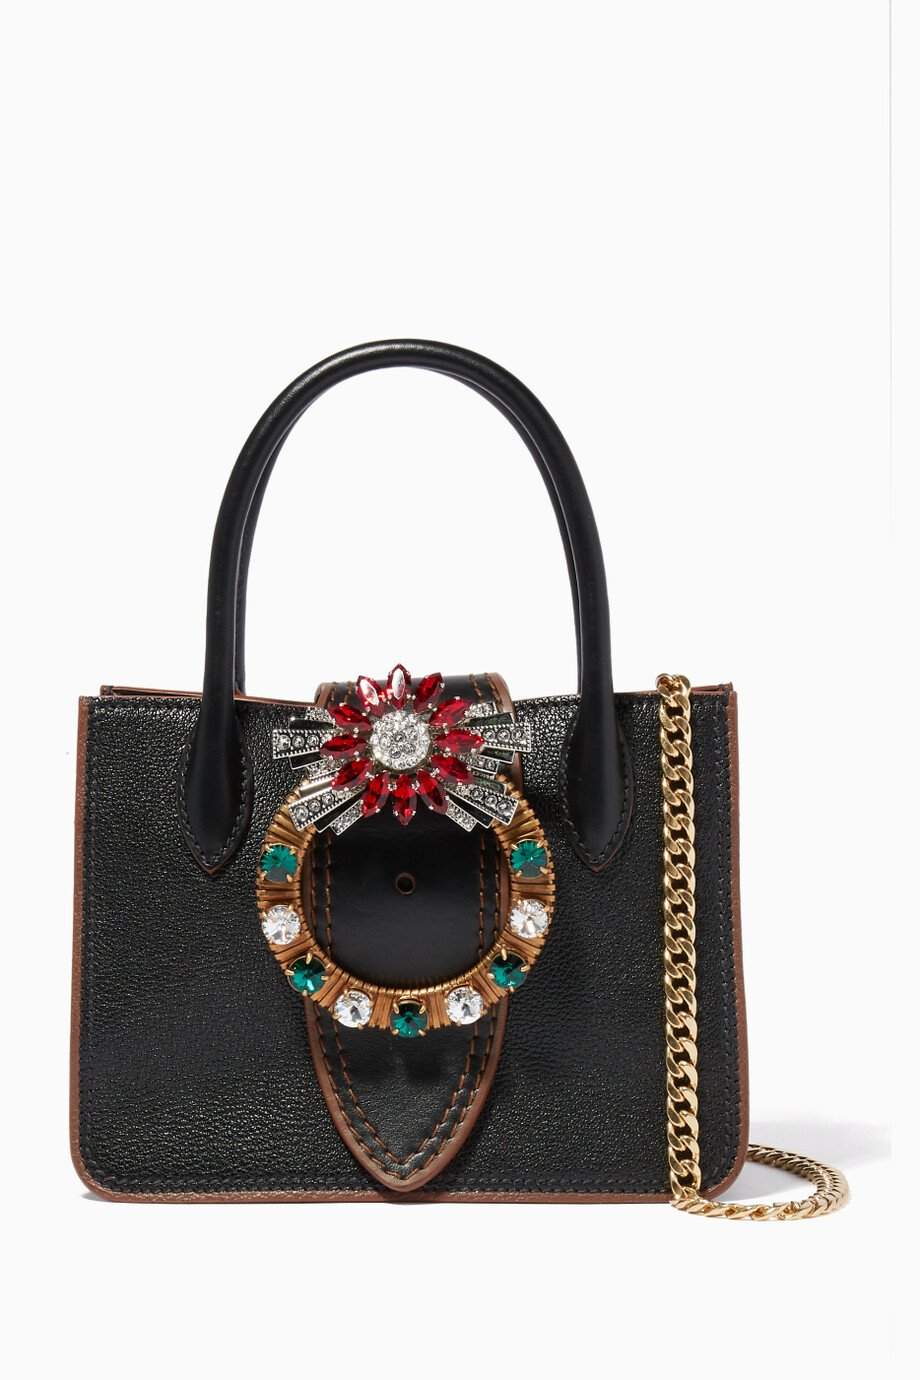 945a6f043b Shop Miu Miu Black Black Nano Lady Madras Embellished Top Handle Bag ...